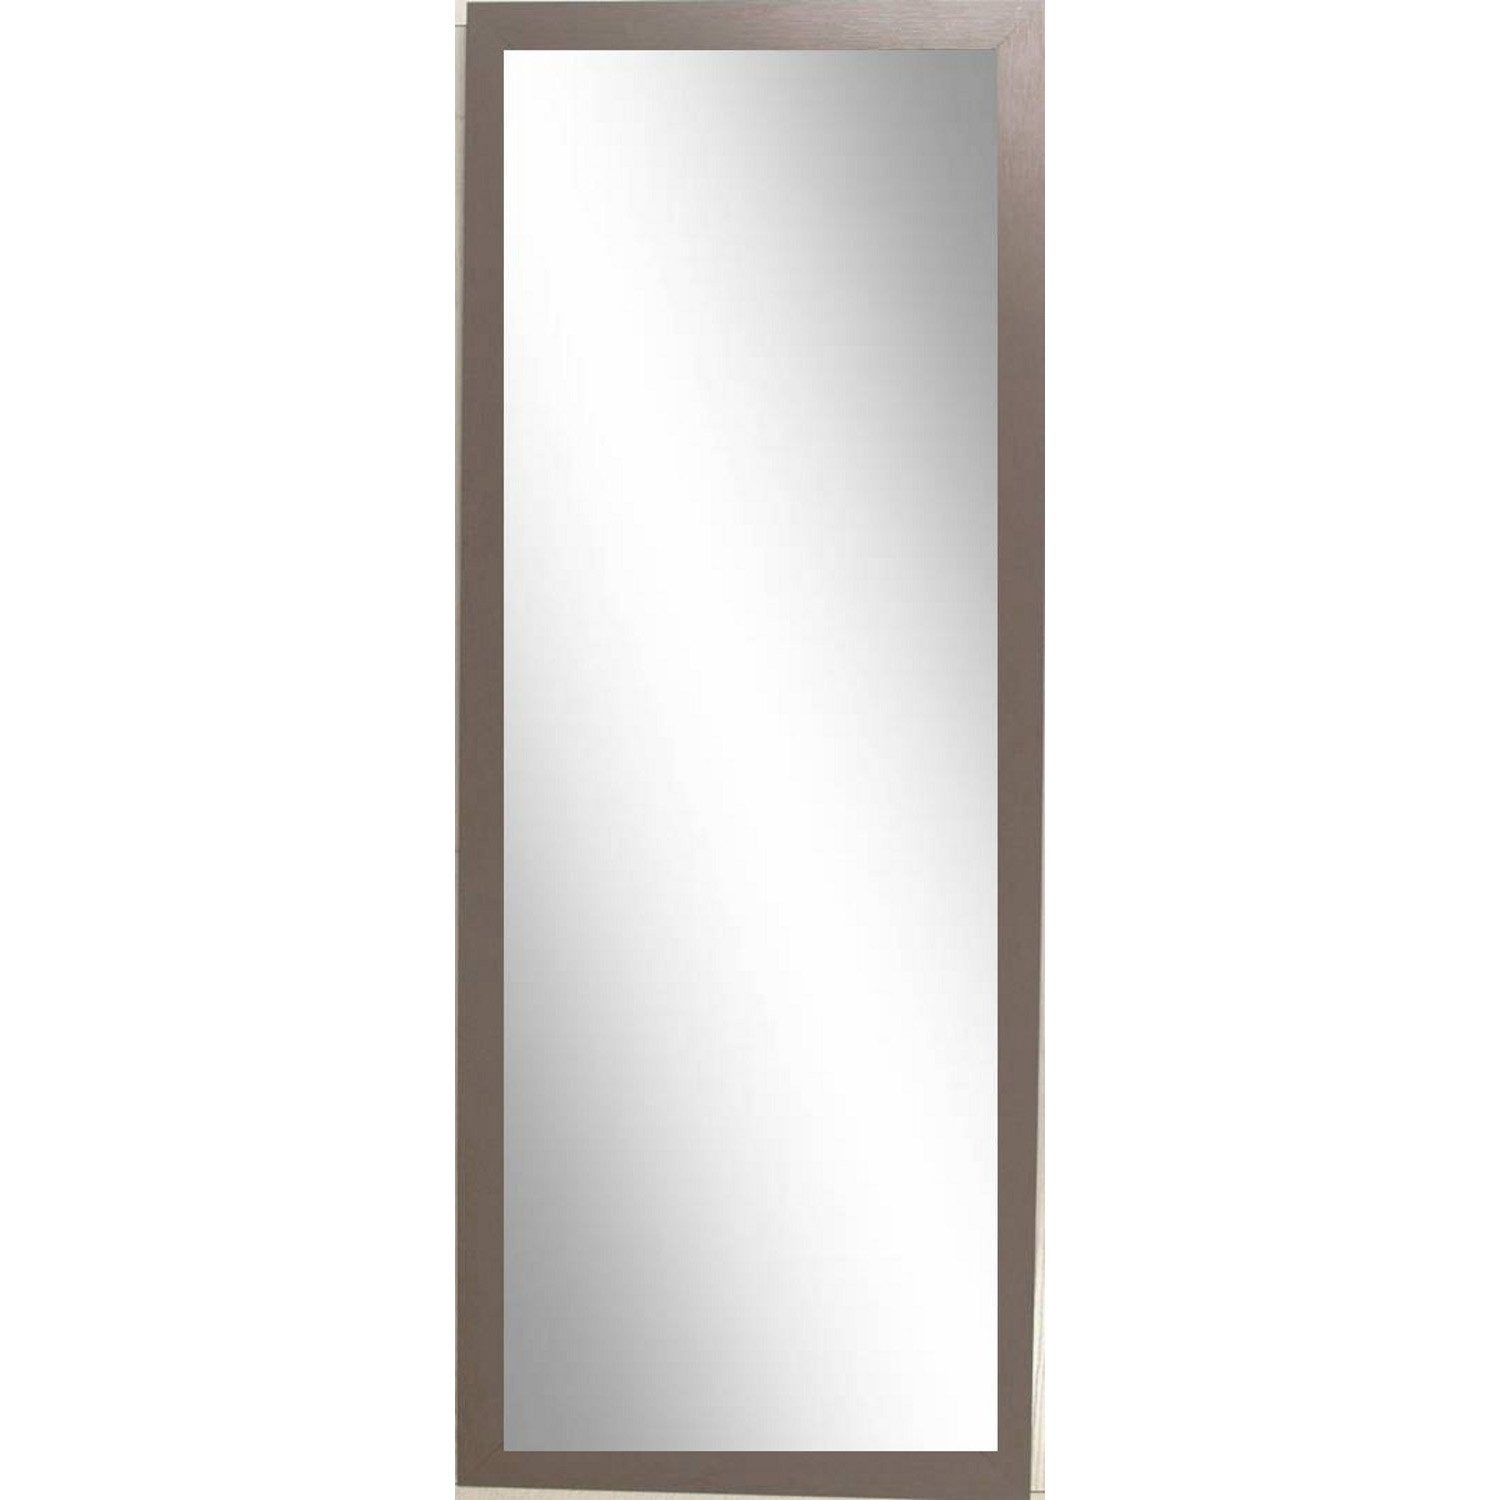 Image gallery miroir for Miroir miroir